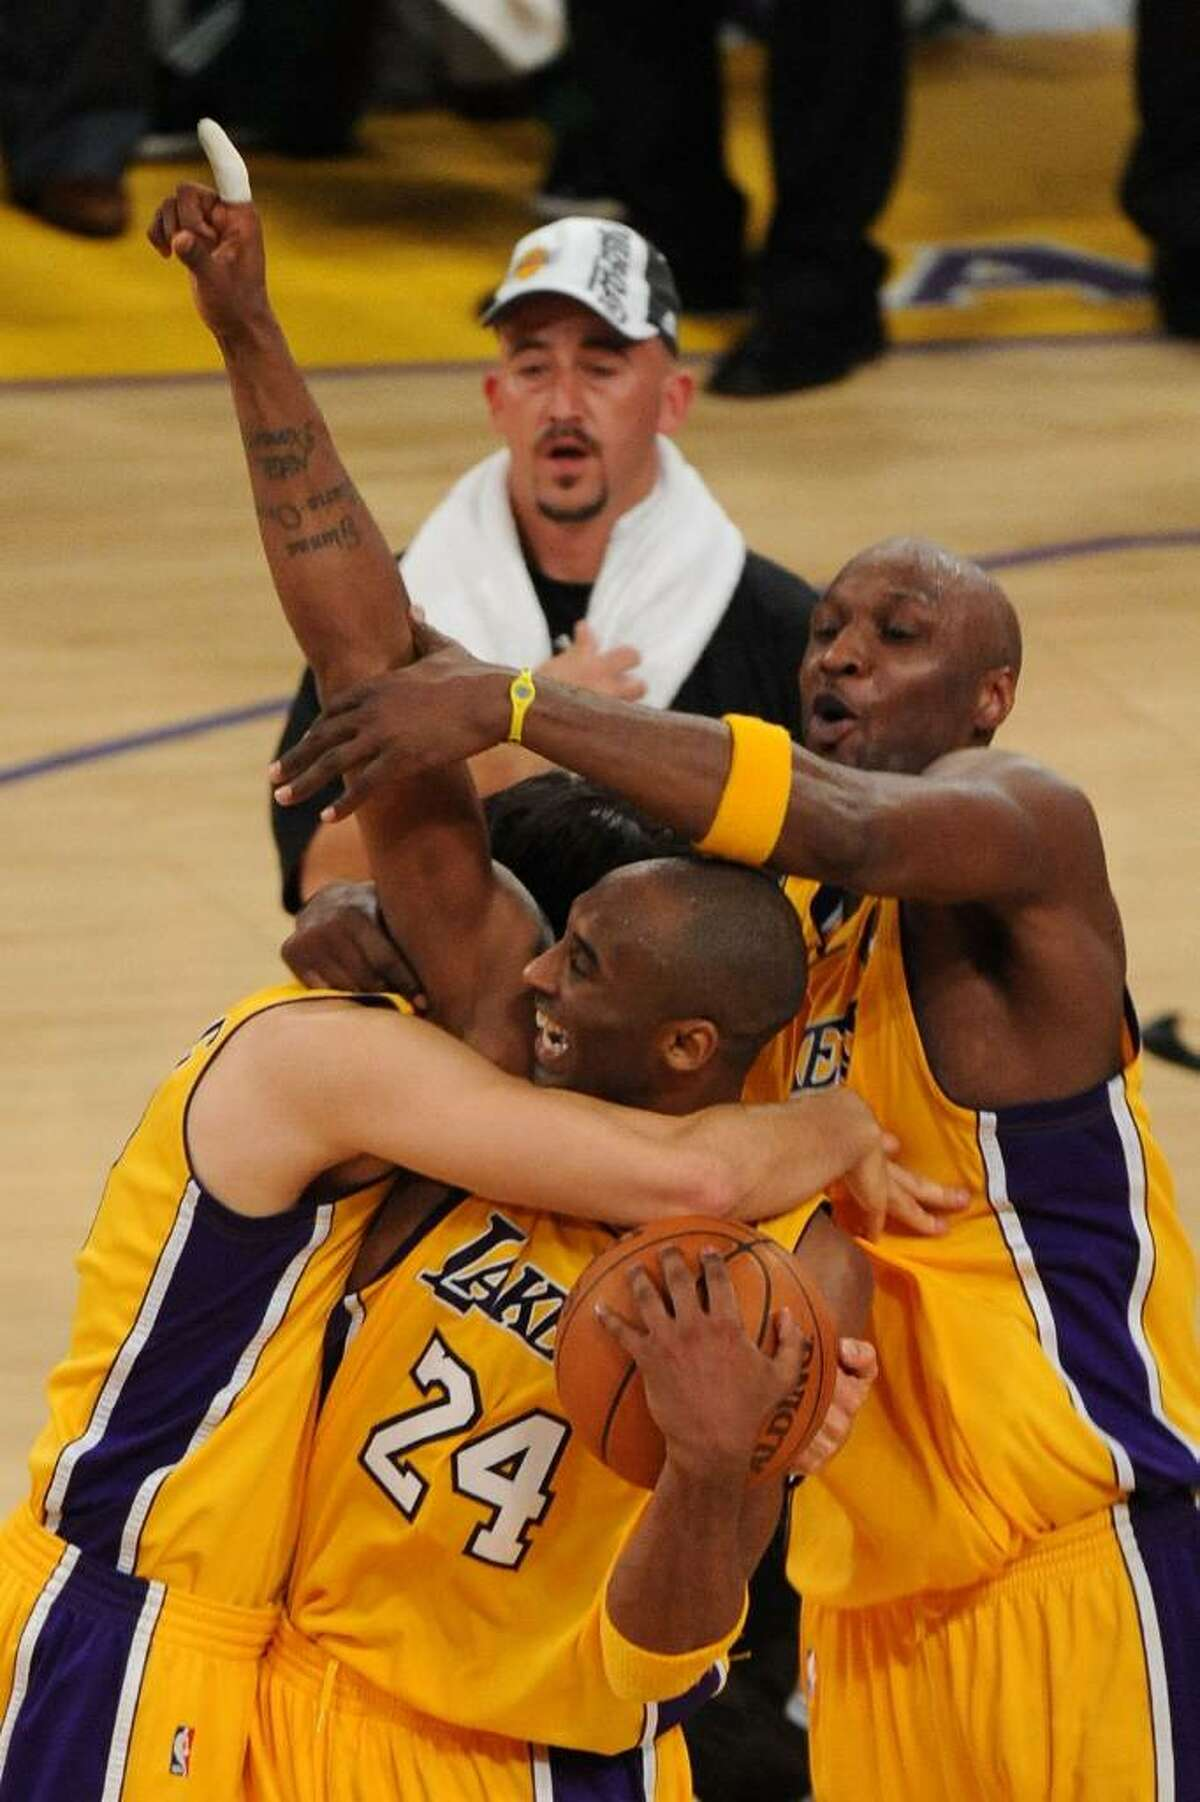 LOS ANGELES, CA - JUNE 17: Kobe Bryant #24, Lamar Odom #7 and Sasha Vujacic #18 of the Los Angeles Lakers celebrate after winning the 2010 NBA Championship 83-79 against the Boston Celtics in Game Seven of the 2010 NBA Finals at Staples Center on June 17, 2010 in Los Angeles, California. NOTE TO USER: User expressly acknowledges and agrees that, by downloading and/or using this Photograph, user is consenting to the terms and conditions of the Getty Images License Agreement. (Photo by Lisa Blumenfeld/Getty Images) *** Local Caption *** Kobe Bryant;Sasha Vujacic;Lamar Odom